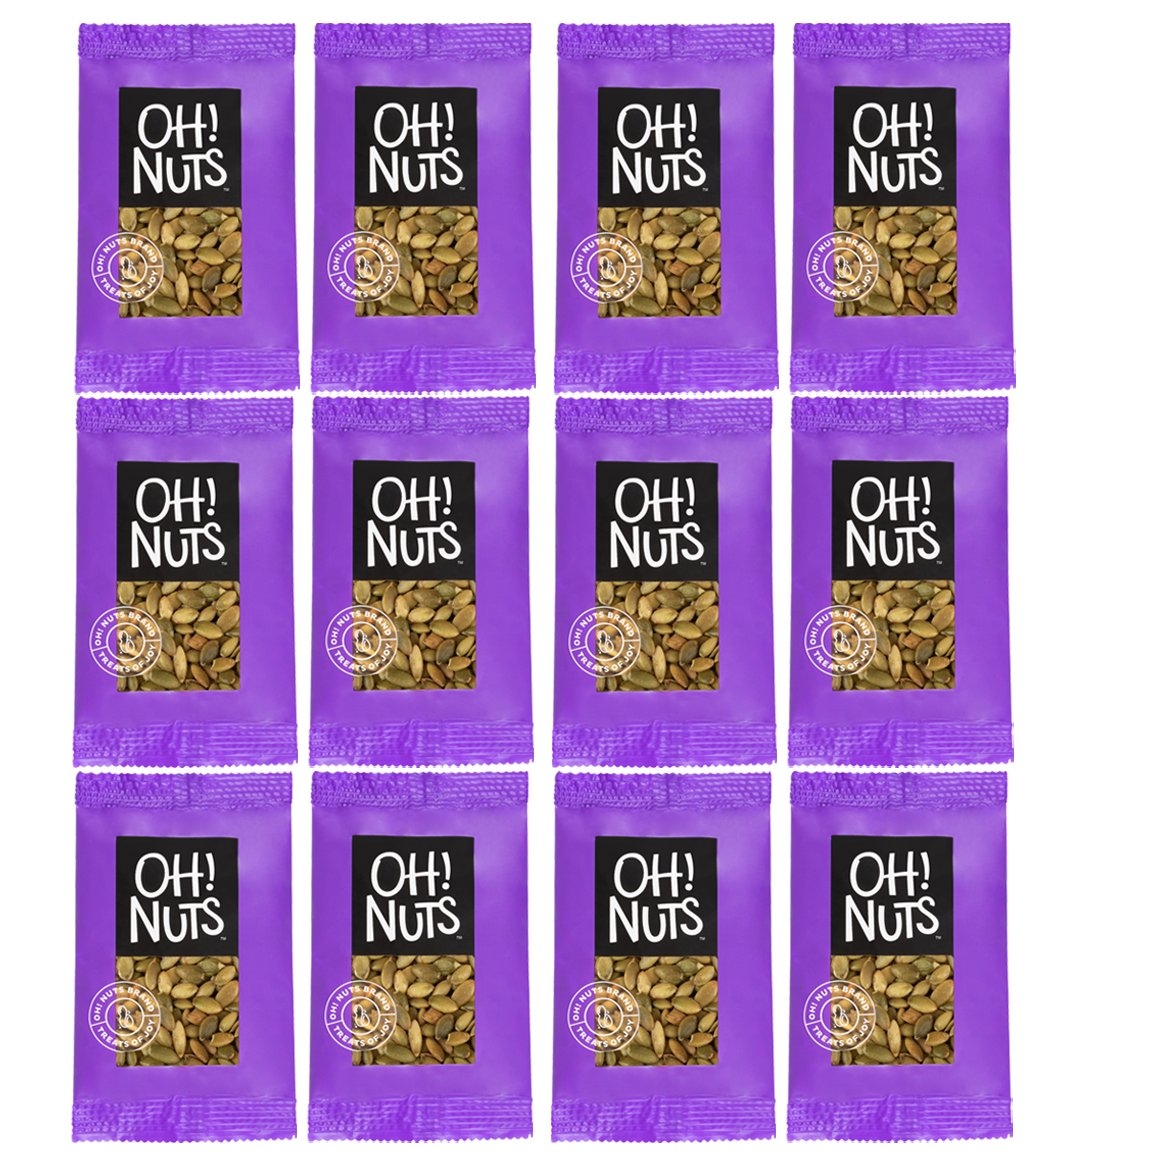 Oh! Nuts Healthy Pumpkin Seeds Roasted Salted | Pepitas Individual Servings Snack | Grab and Go Snacks Pack by Oh! Nuts®